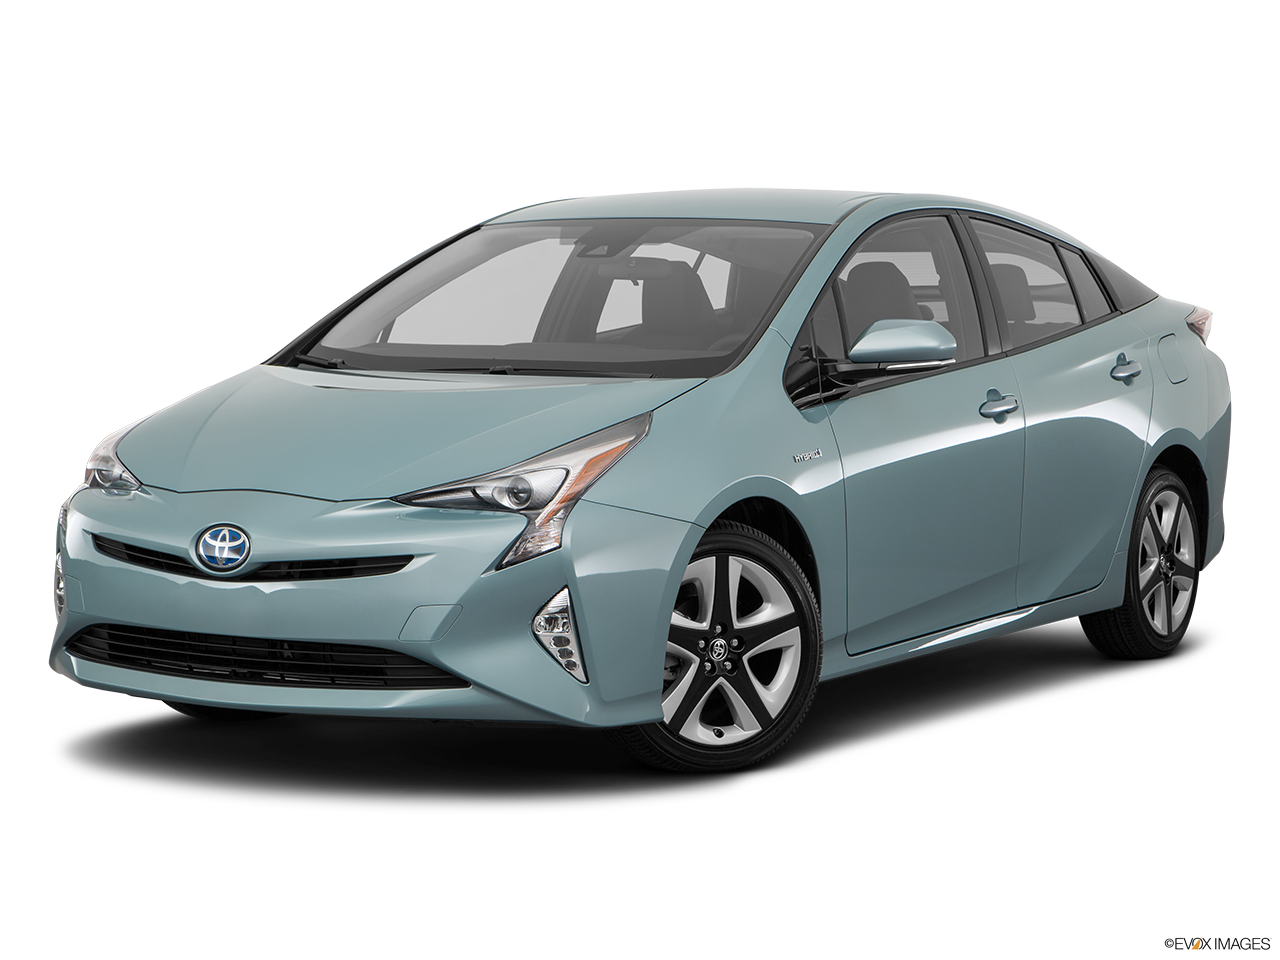 Test Drive A 2017 Toyota Prius at Tustin Toyota in Tustin